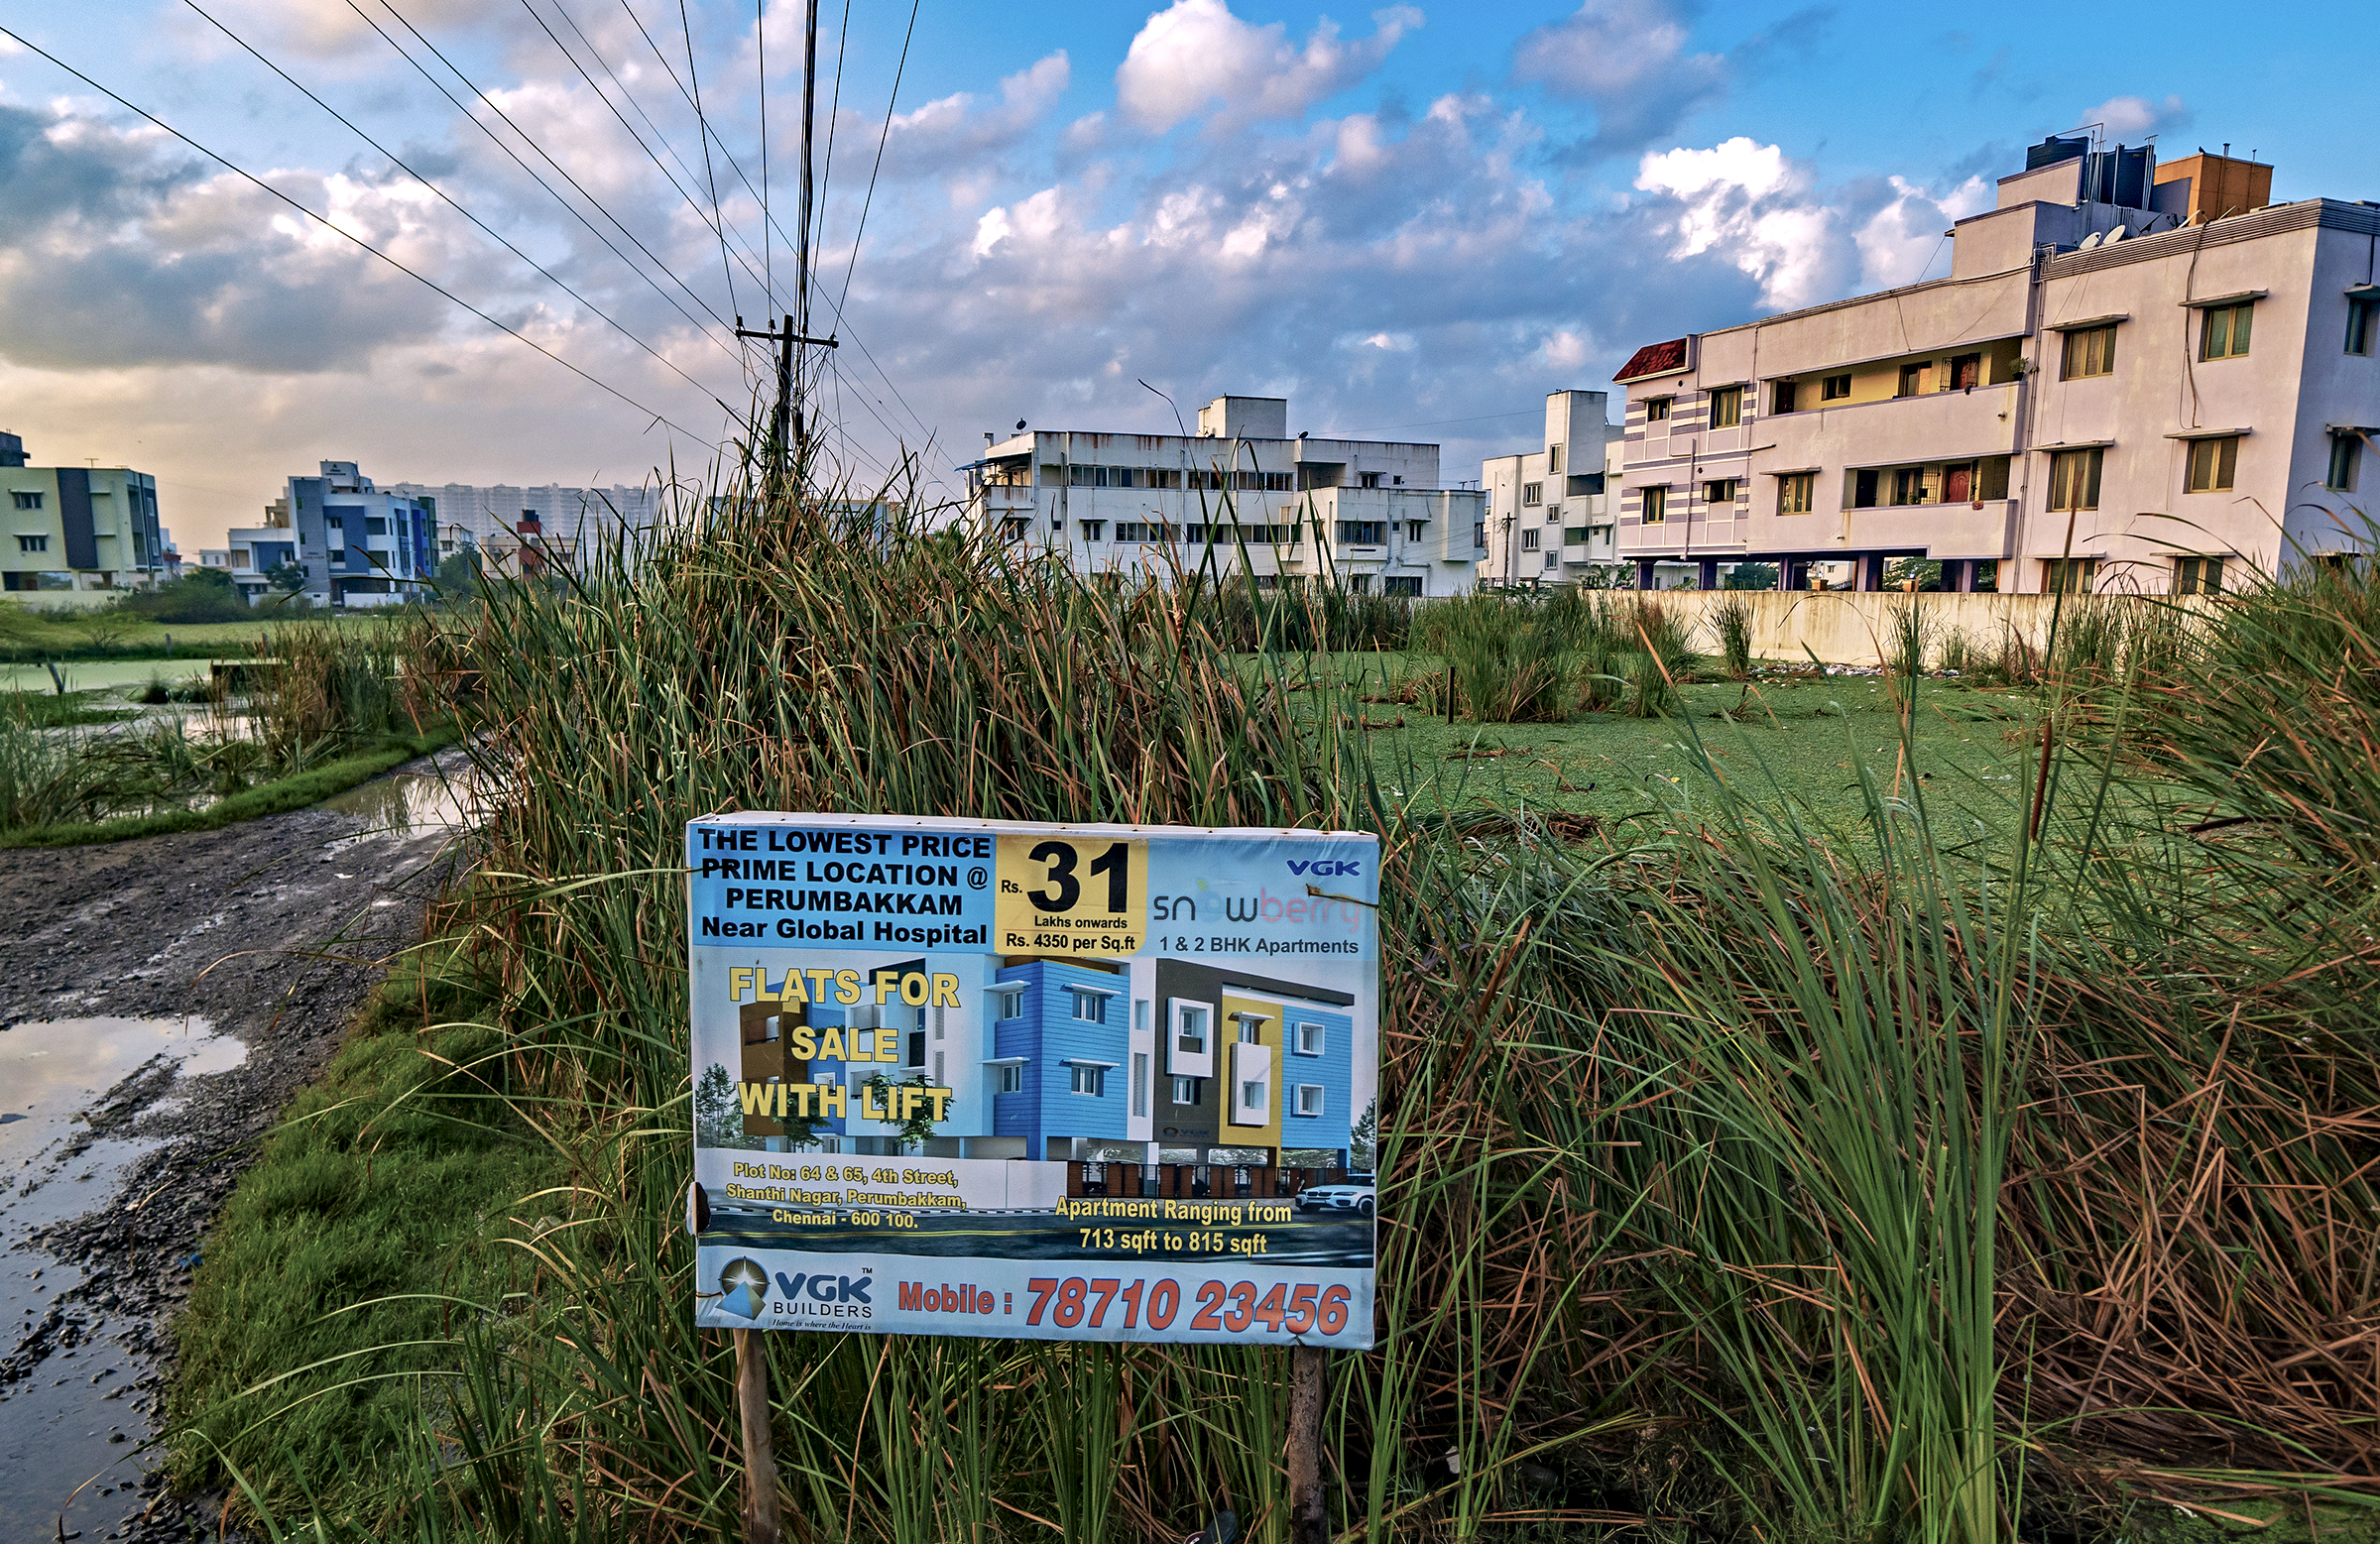 Chennai's marshlands continue to be paved over and sold, despite urban development's impacts on the floods, droughts, and the region's dwindling wetland ecosystems. This sign advertises prime real estate locations at Perumbakken, a once-expansive wetland in Chennai.